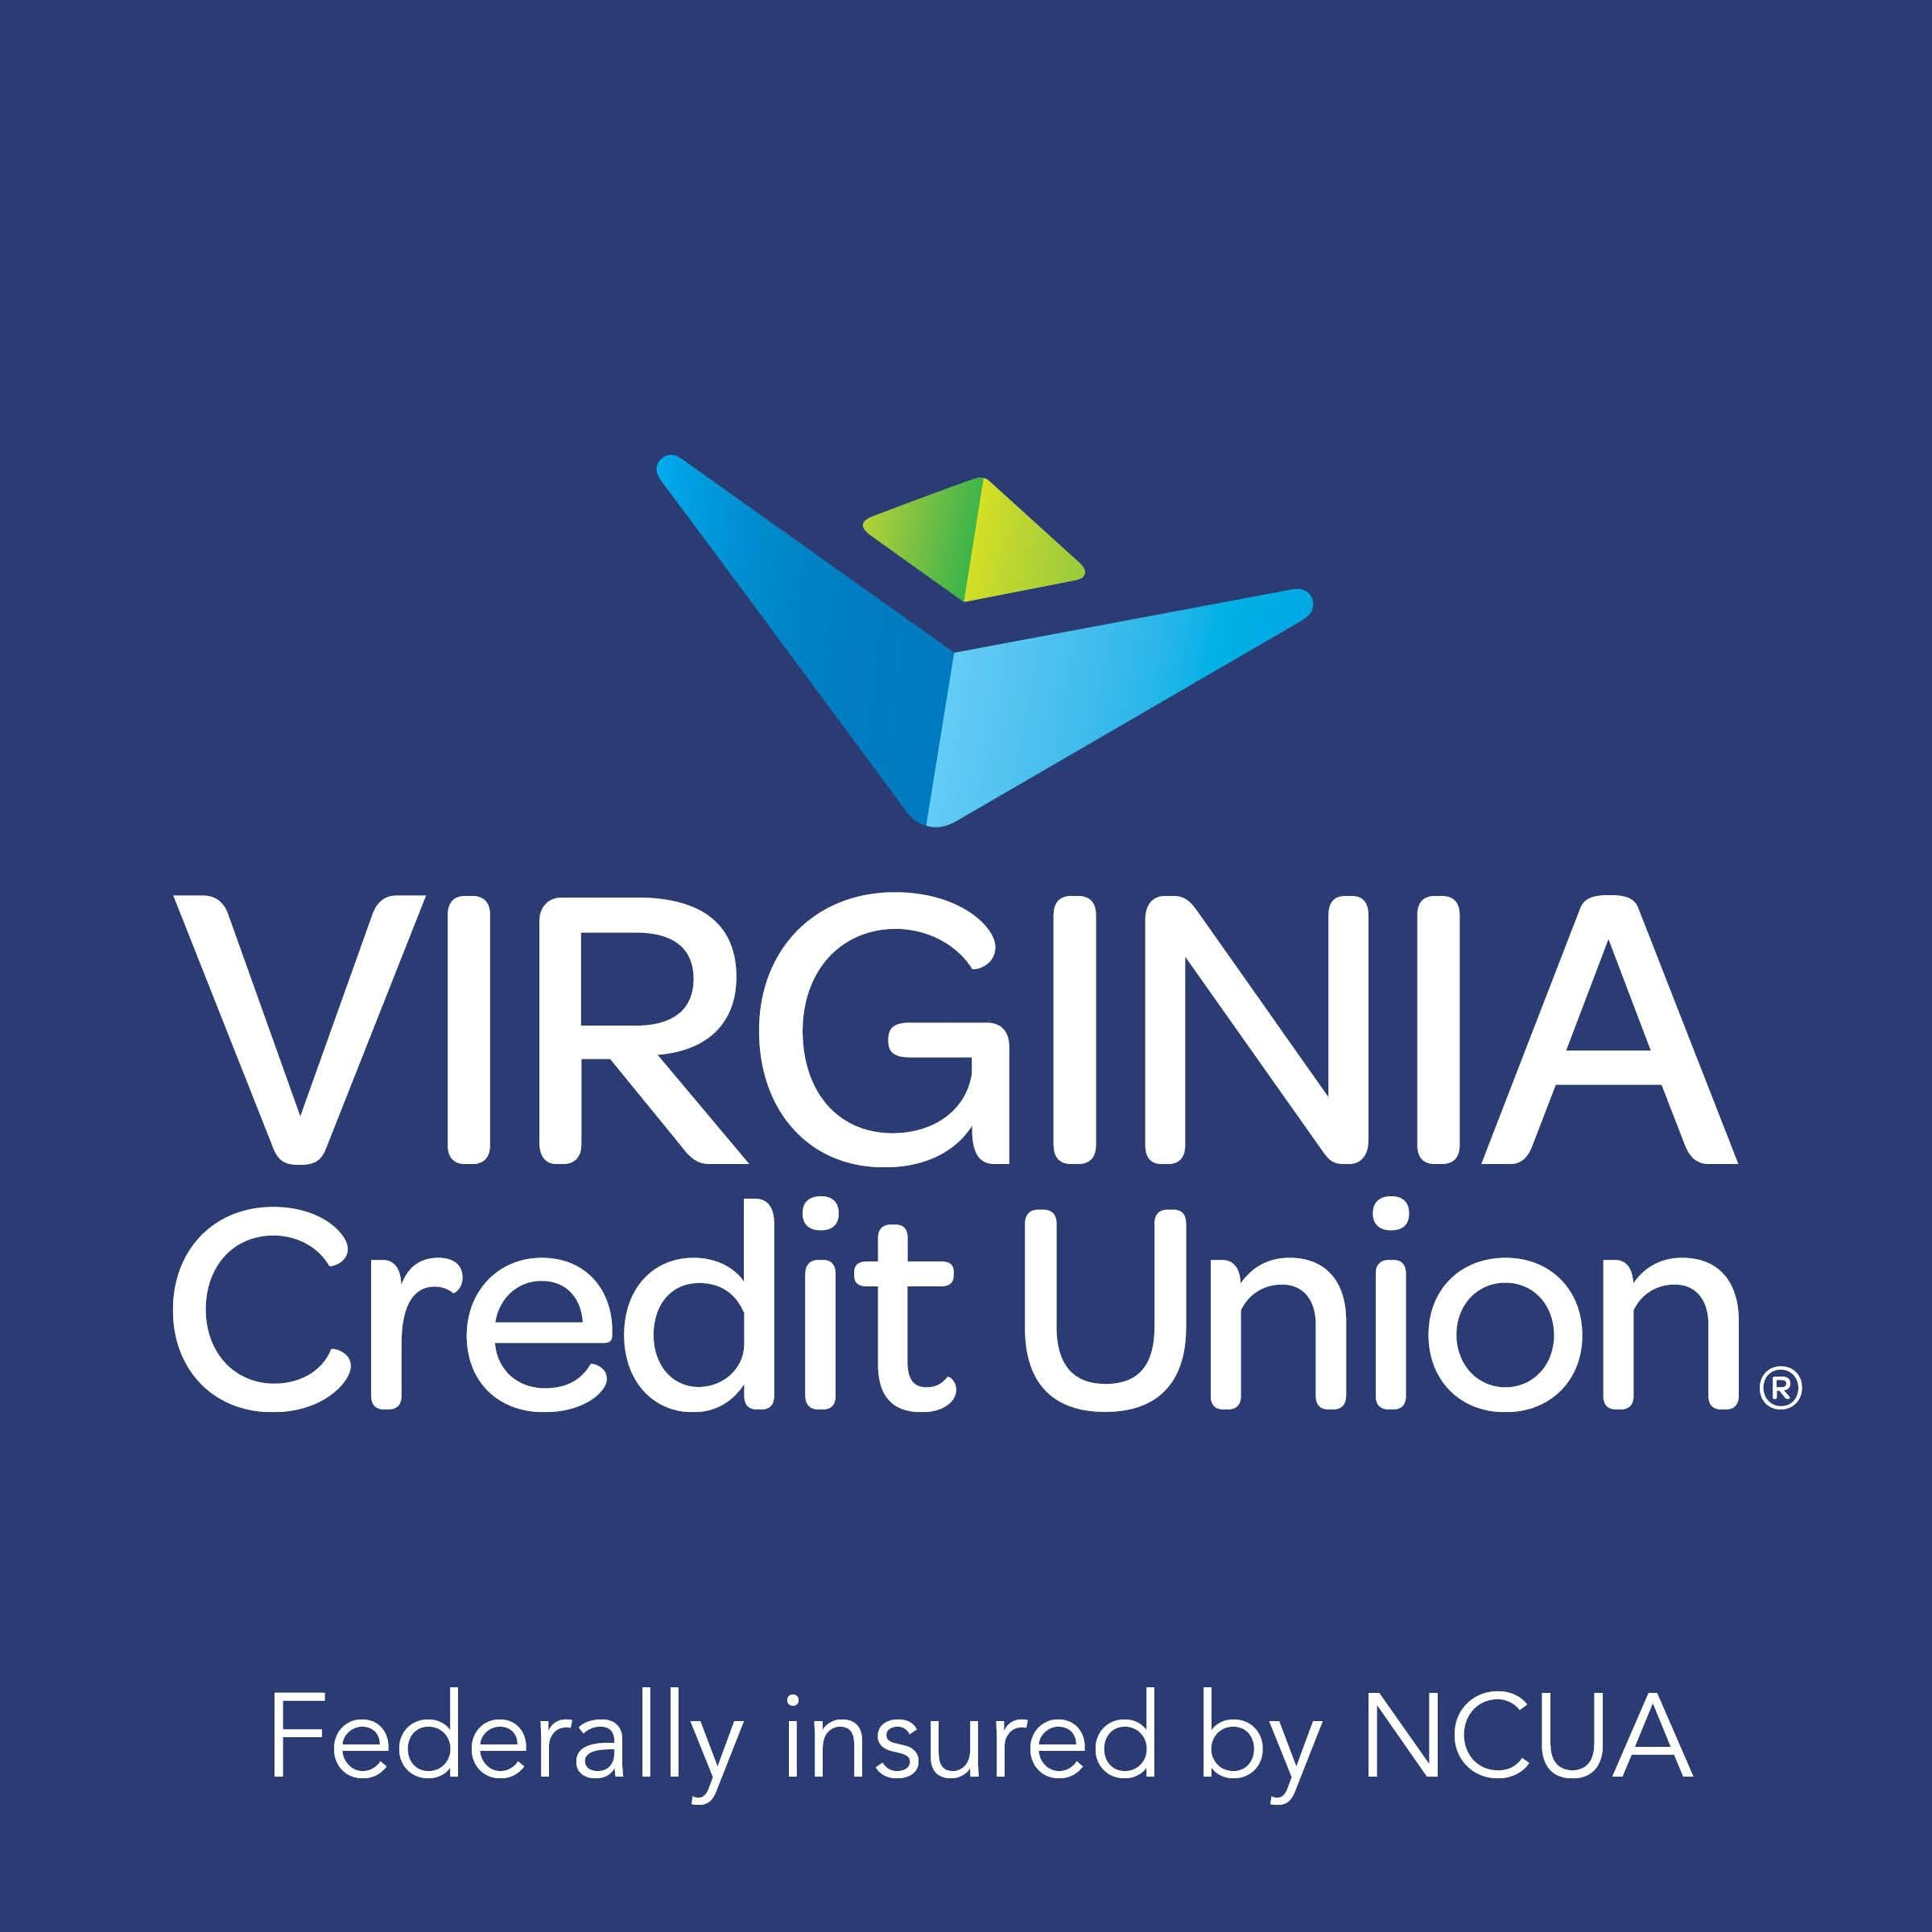 Seven Mind-Blowing Reasons Why Va Credit Union Is Using This Technique For Exposure   Va Credit Union